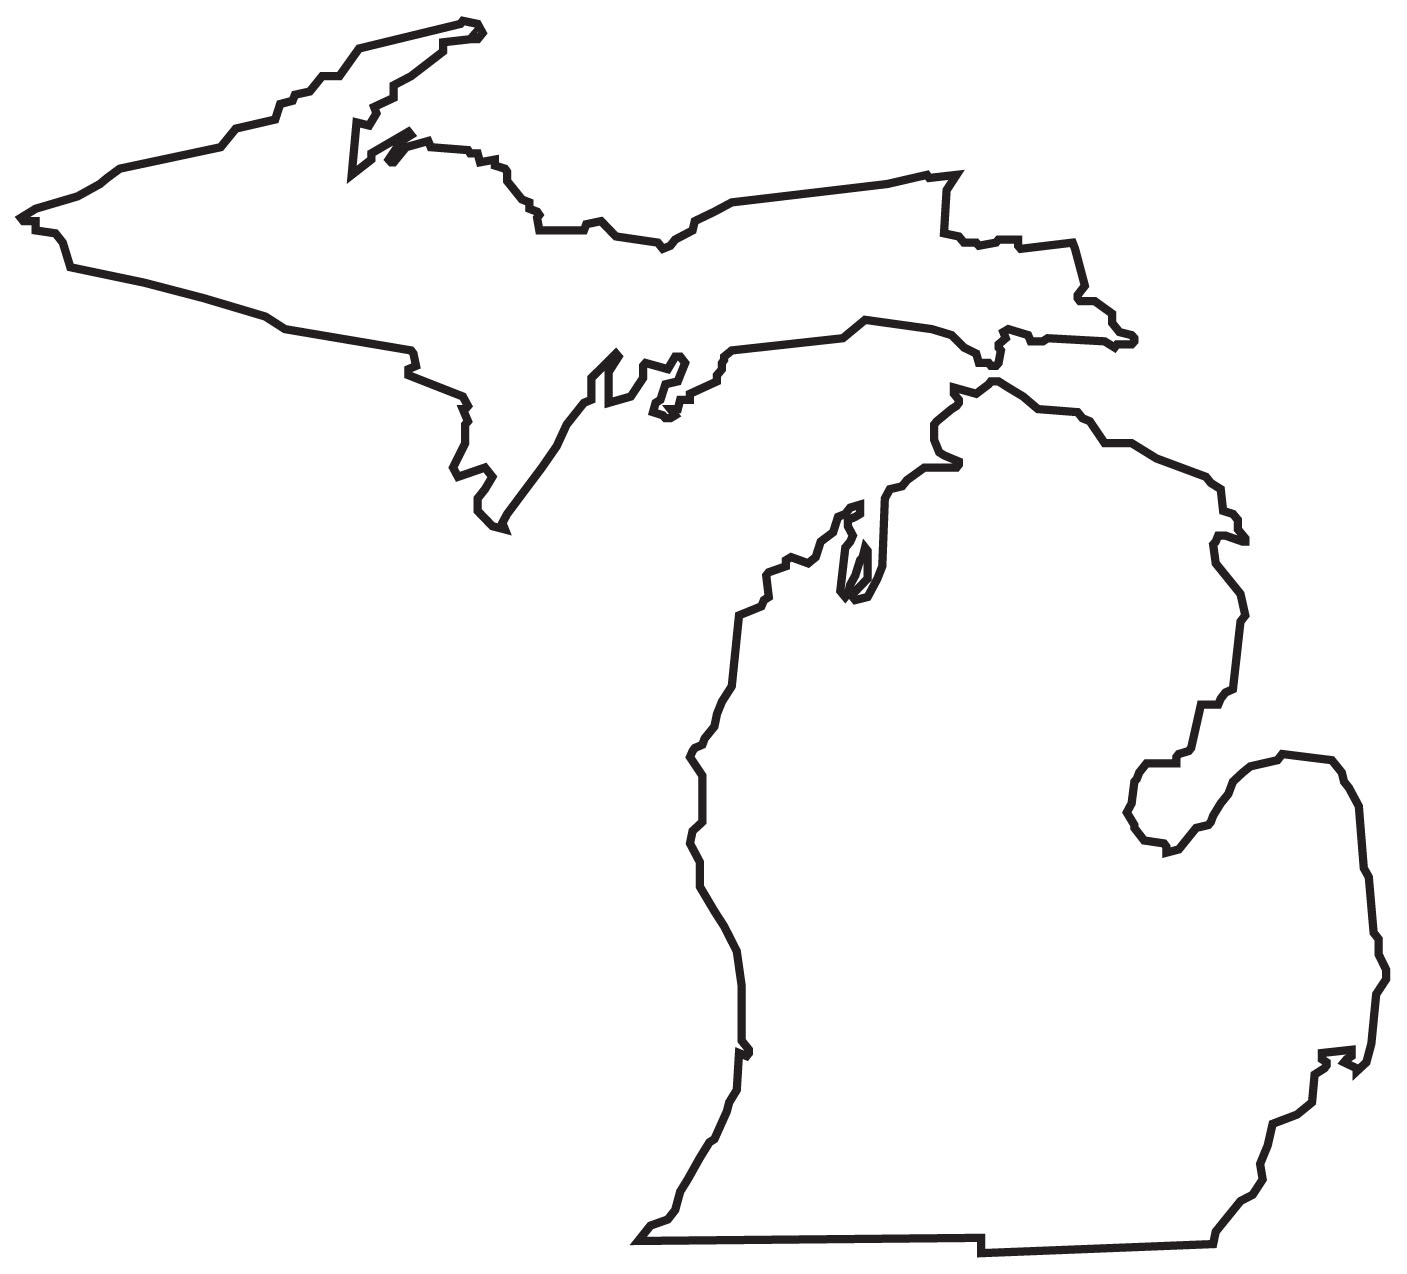 Michigan lower peninsula outline clipart